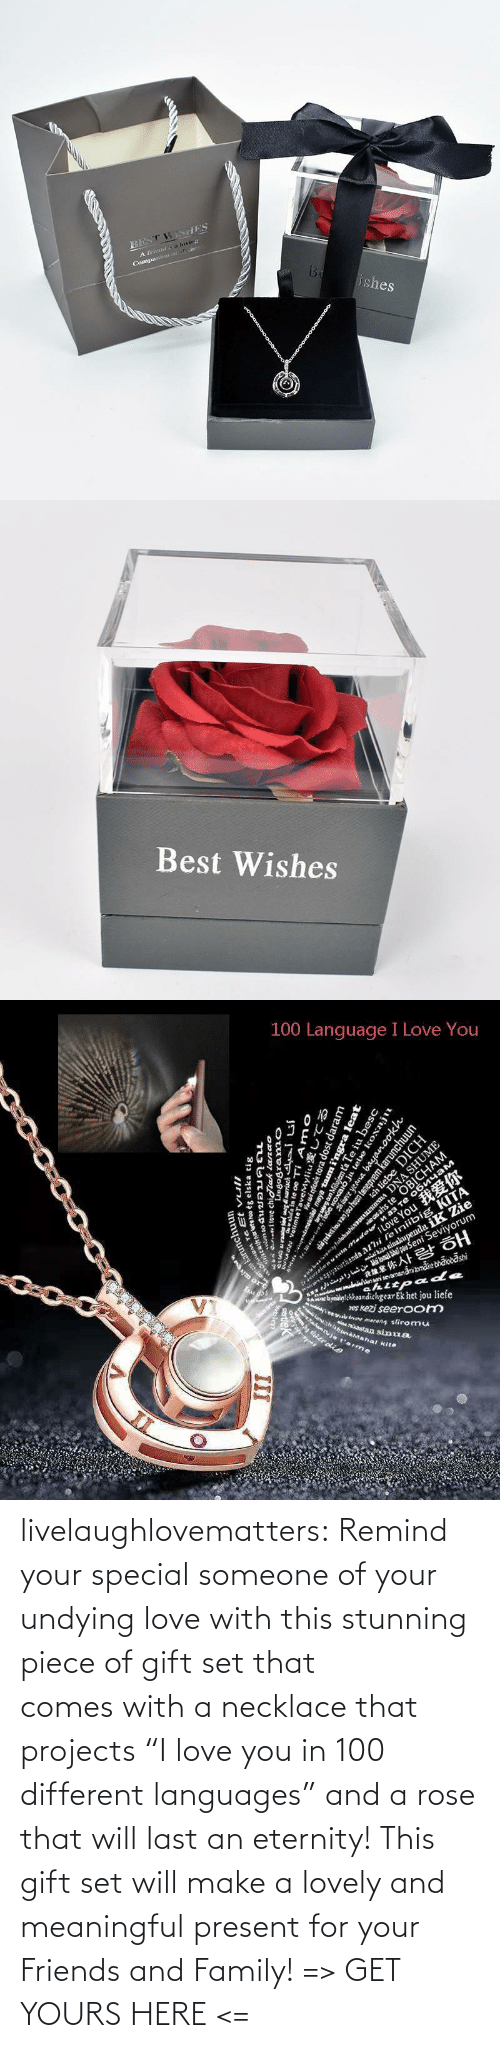 "I Love You: livelaughlovematters:  Remind your special someone of your undying love with this stunning piece of gift set that comes with a necklace that projects ""I love you in 100 different languages"" and a rose that will last an eternity! This gift set will make a lovely and meaningful present for your Friends and Family! => GET YOURS HERE <="